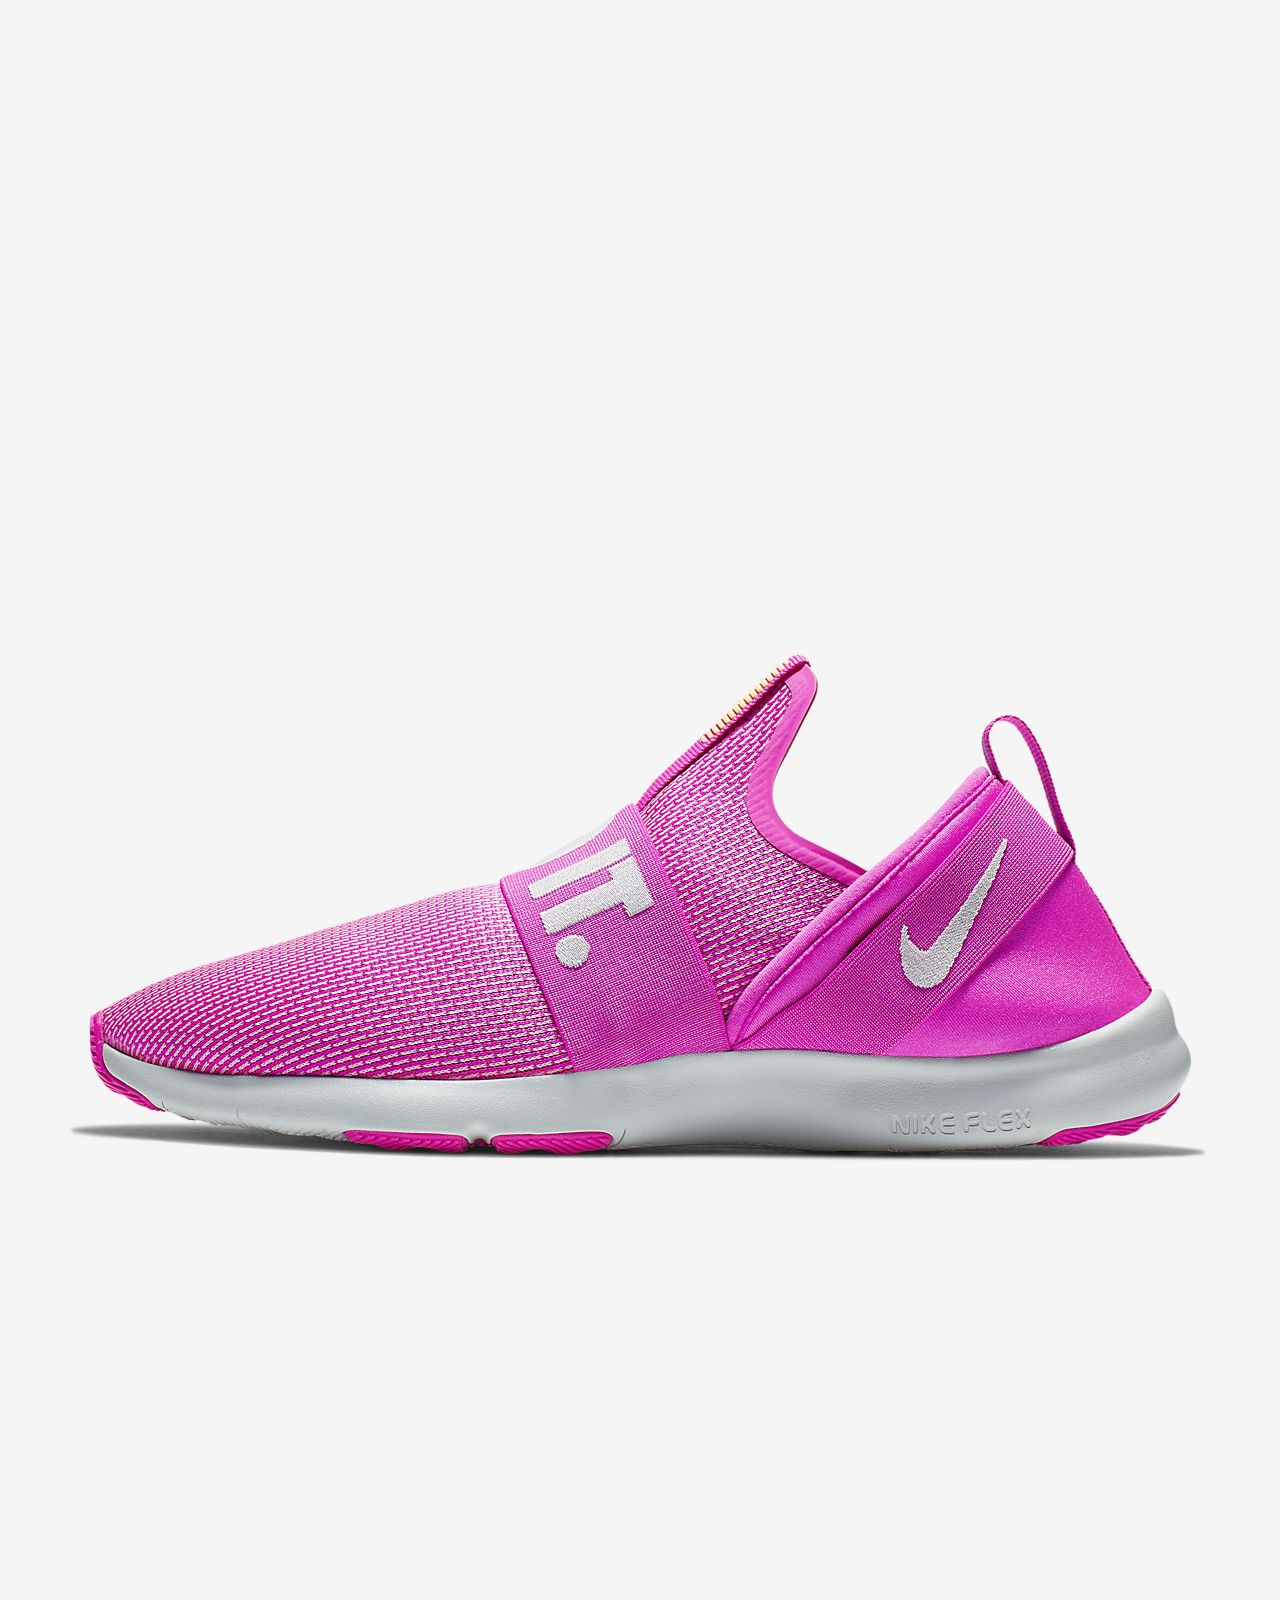 681b403287 Nike Flex Motion Trainer Women's Training Shoe. Nike.com ID